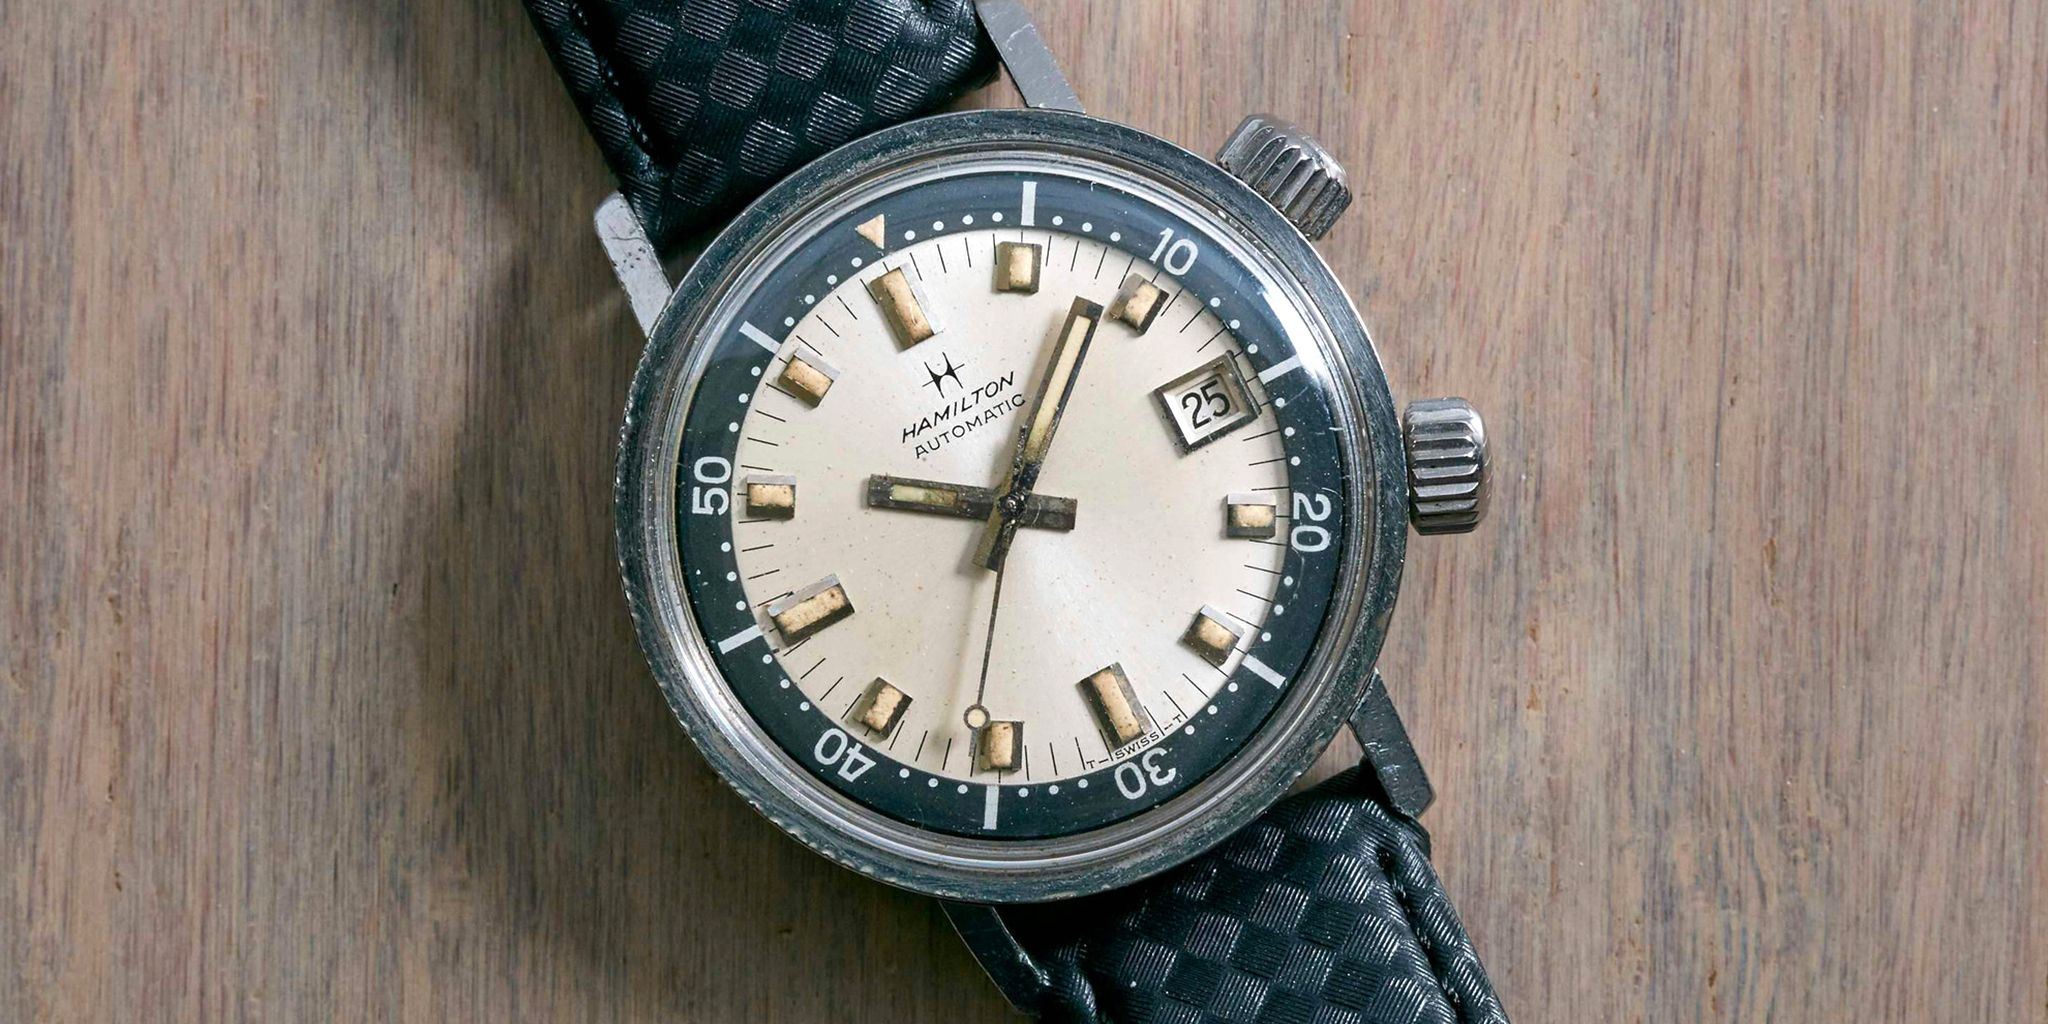 style an lot professional speedmaster stories vintage xv s why story moonwatch limited was omega inline watch in popular this should watches today image men apollo scott invest a edition catawiki you at worden